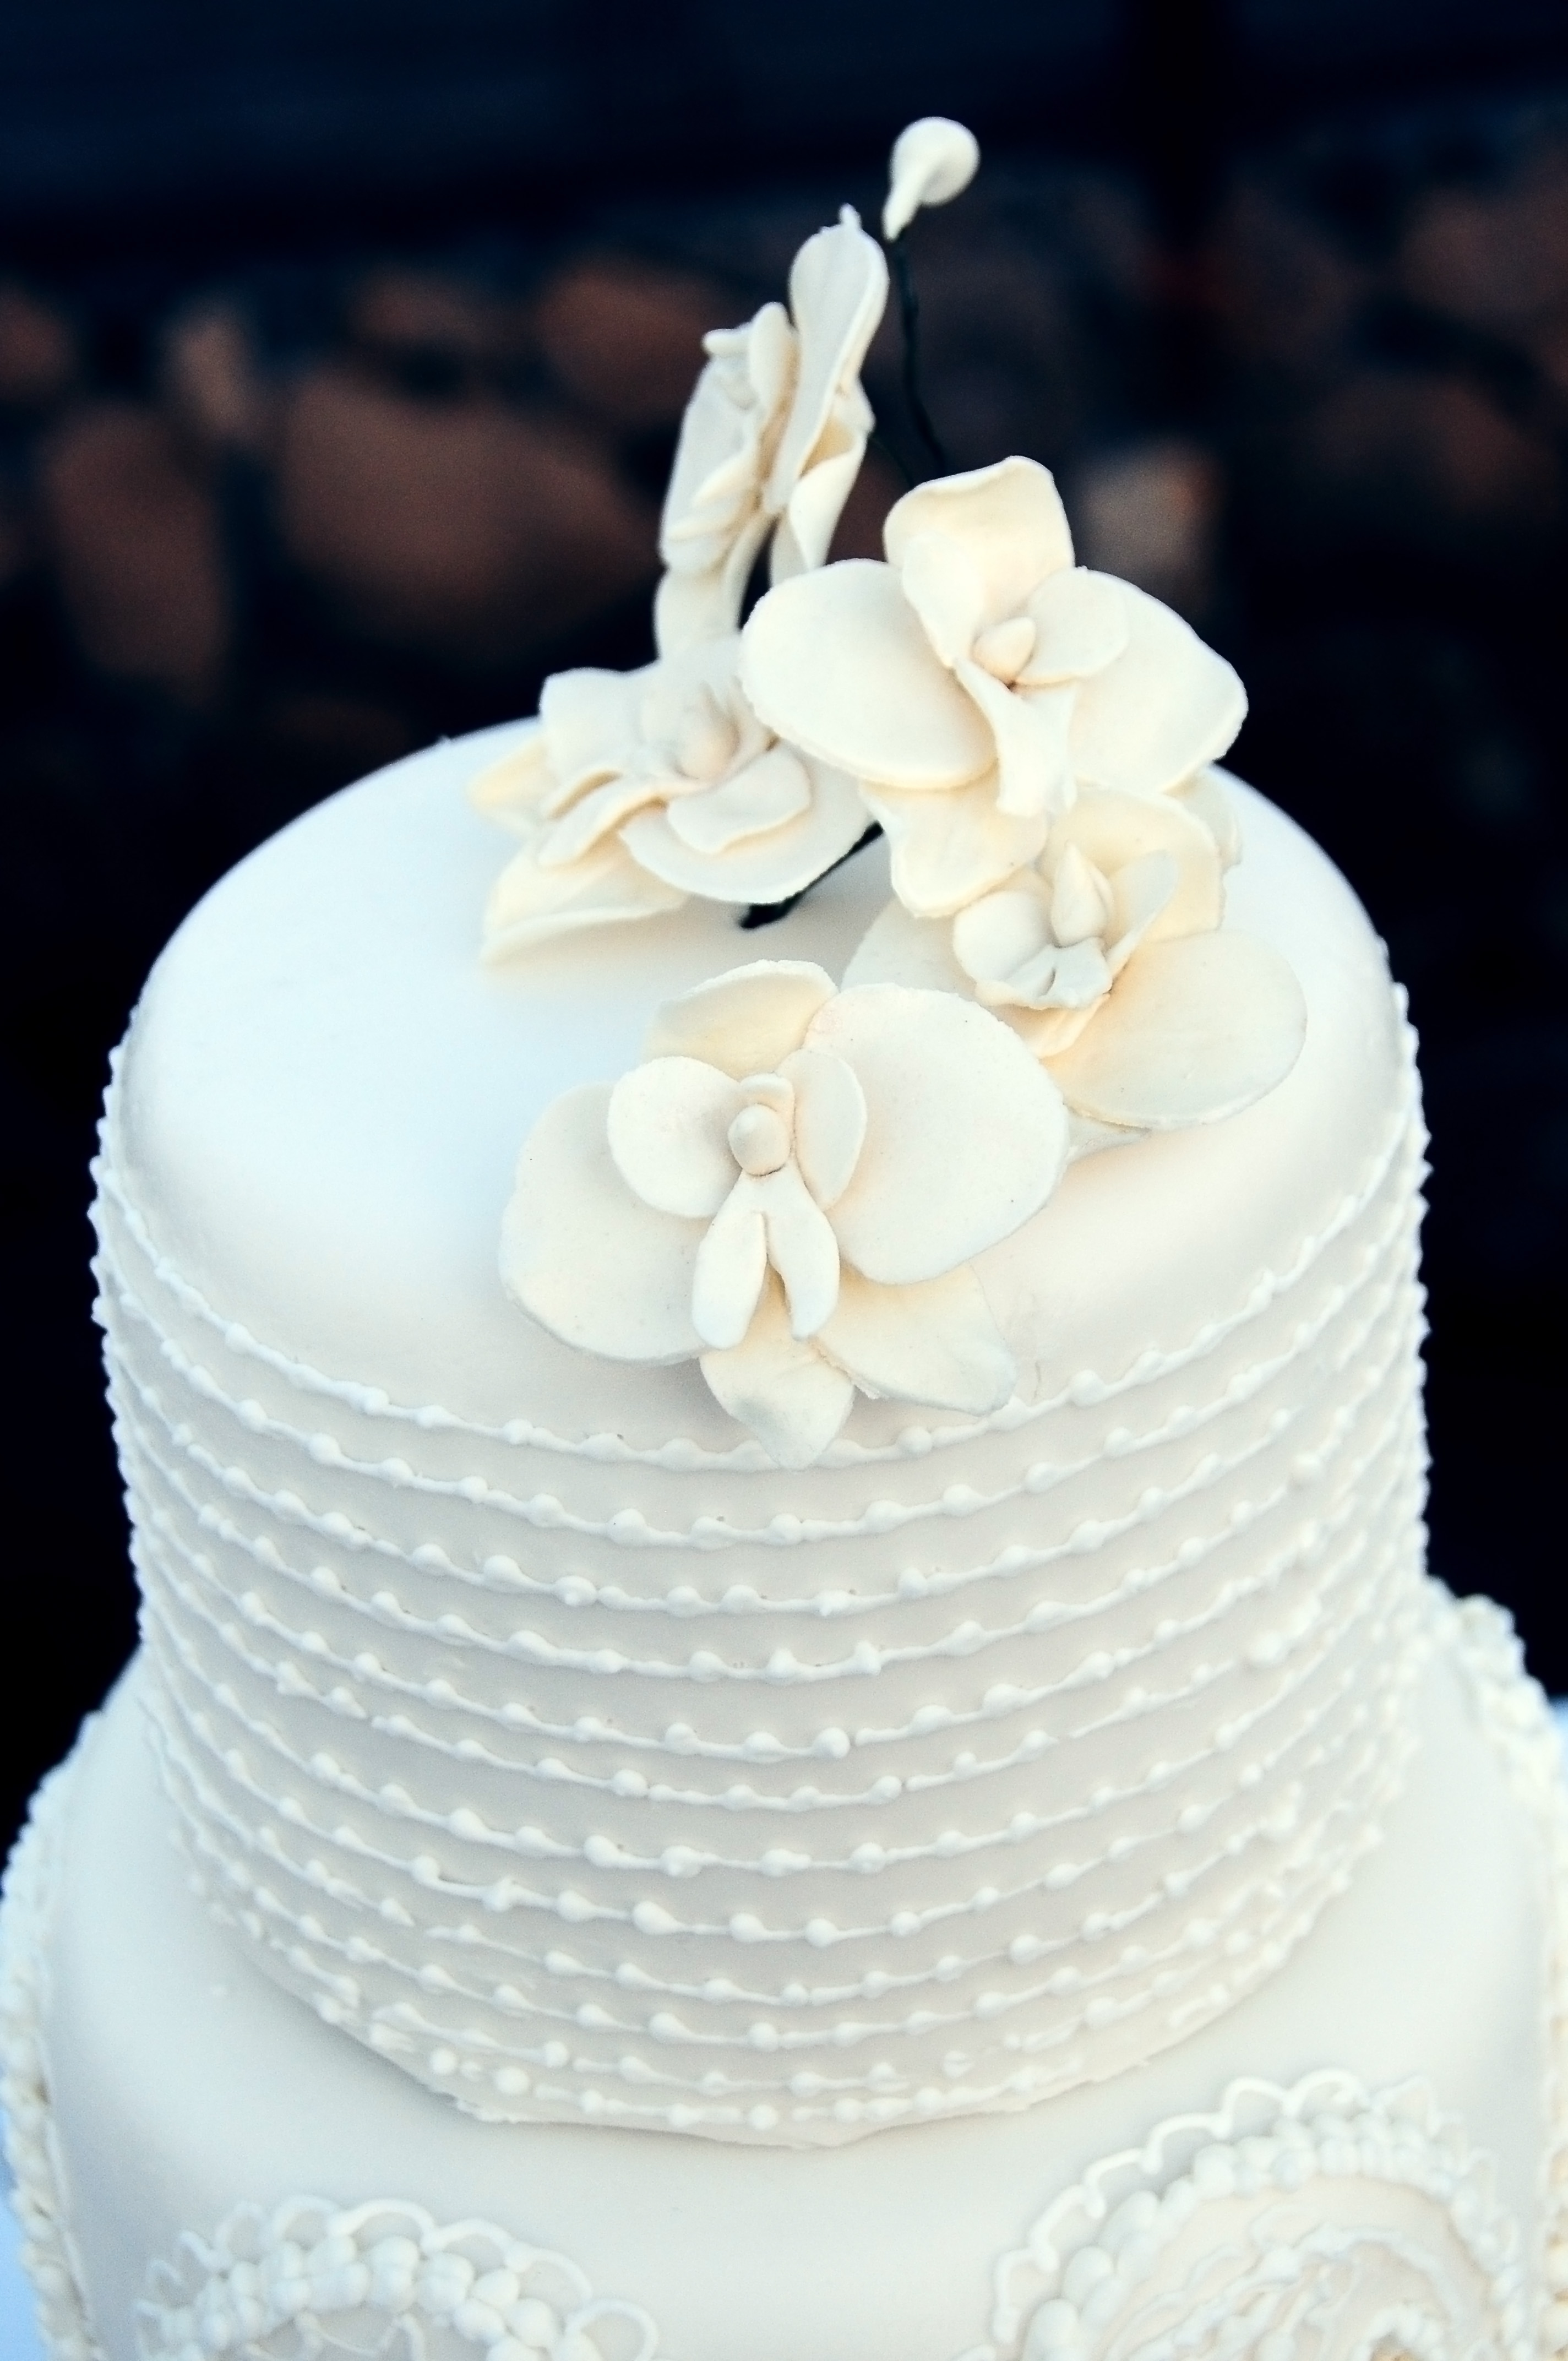 Wedding cakes in Northern Cyprus (55)